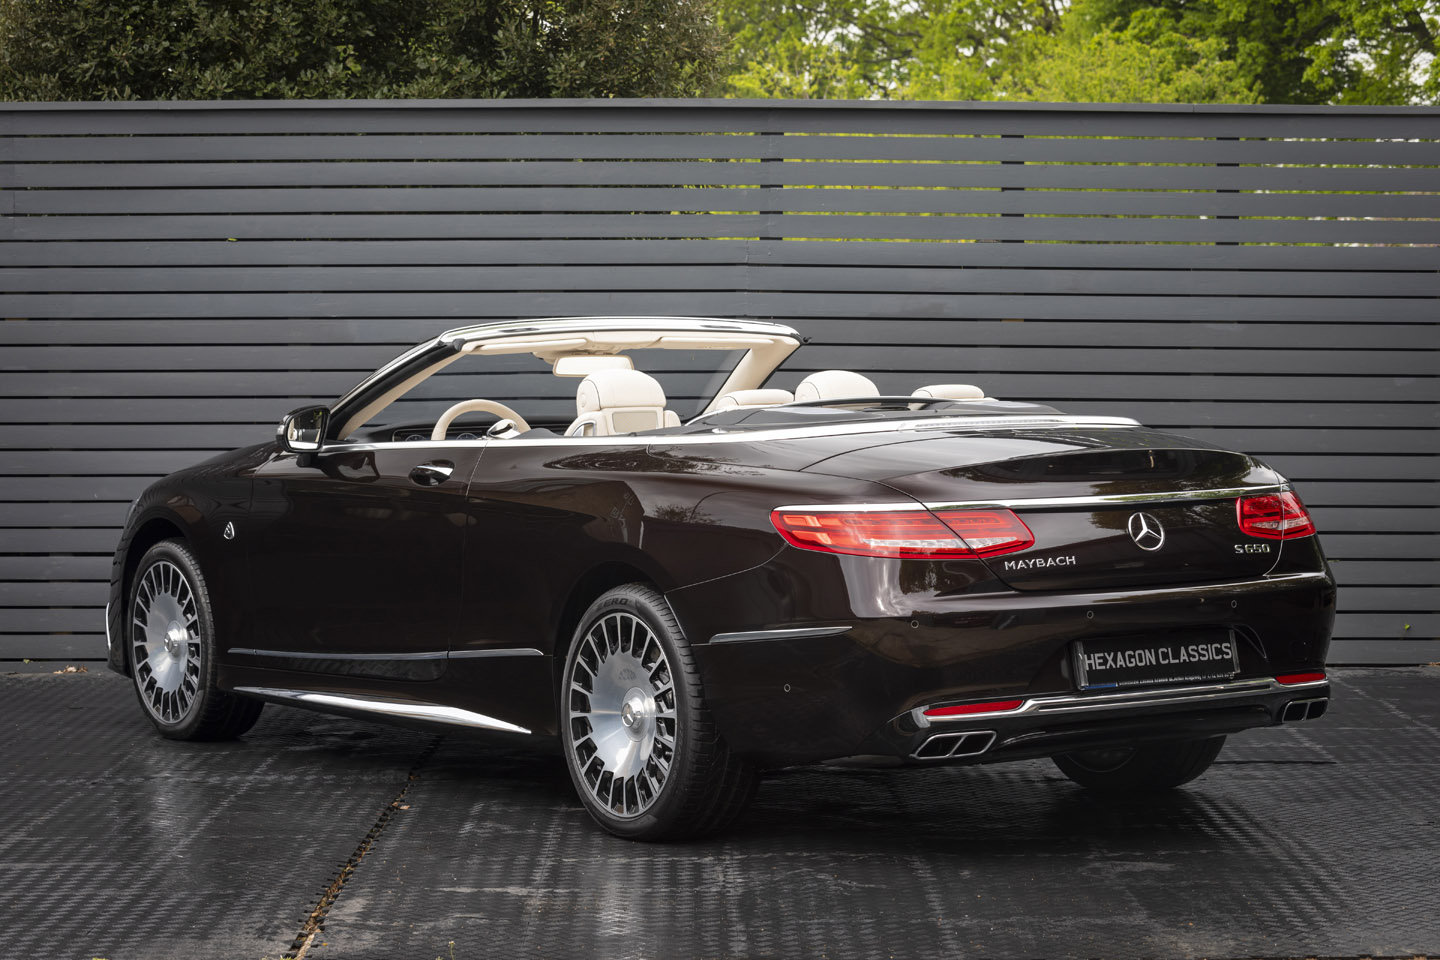 2019 S650 Cabriolet LHD (DELIVERY MILES) For Sale (picture 2 of 6)